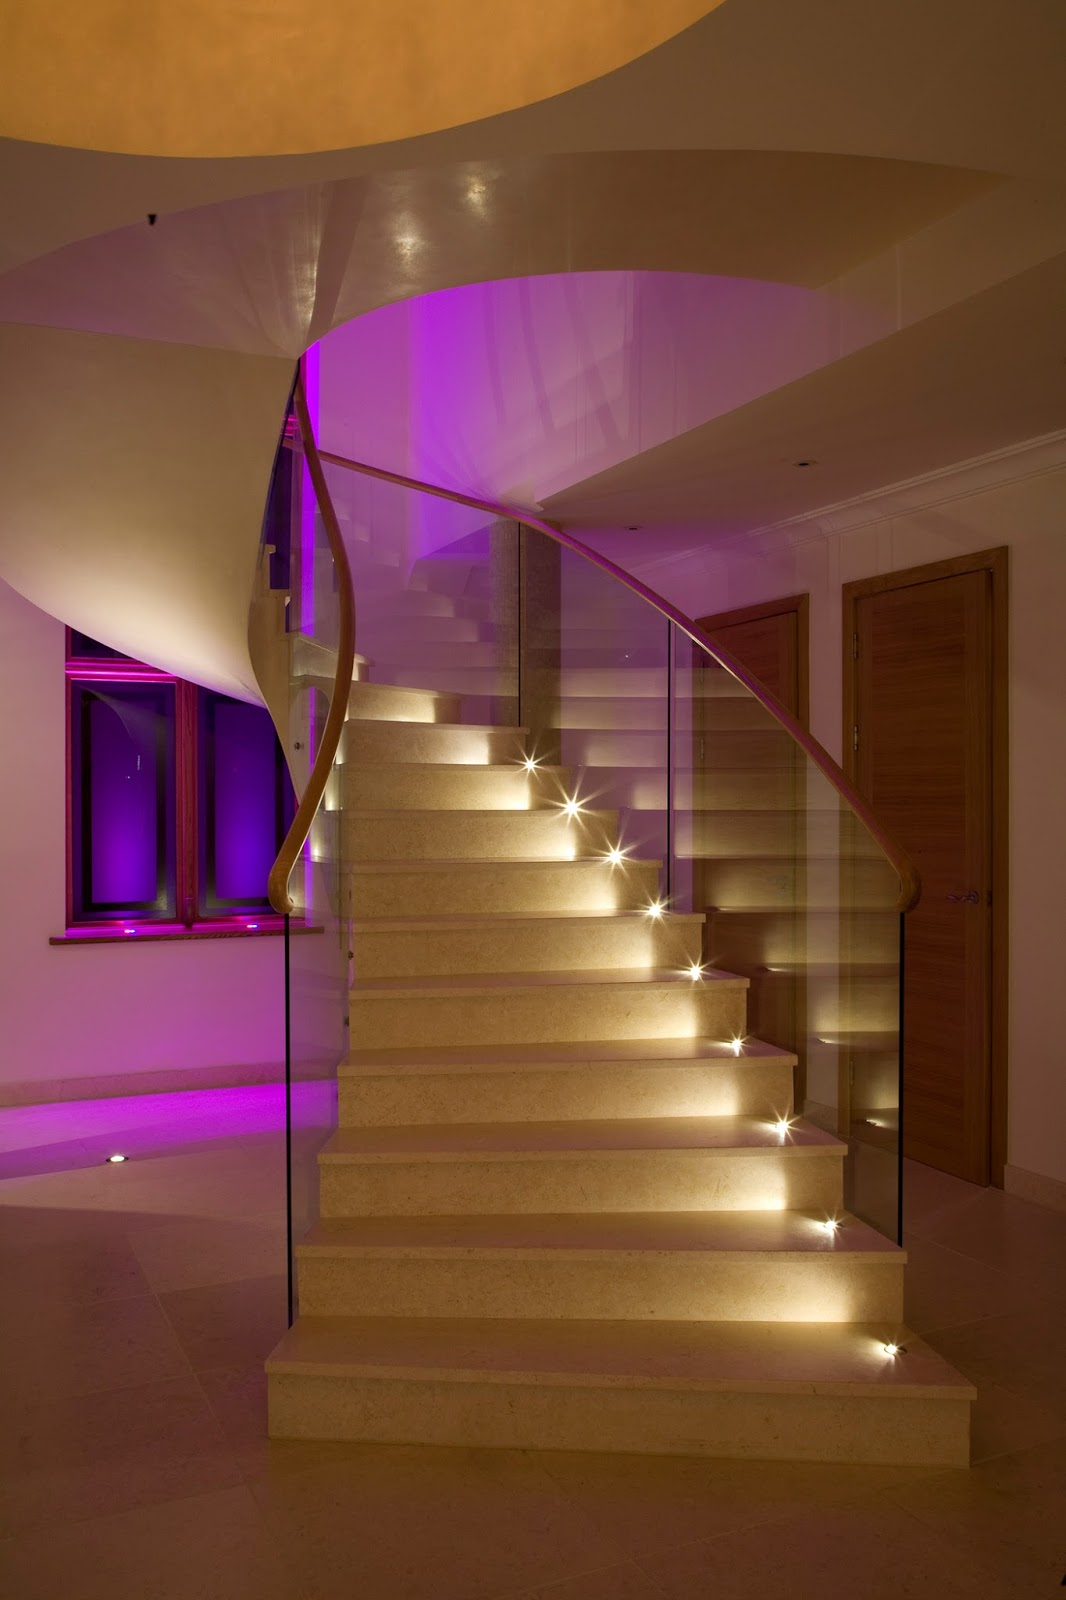 A guide to interior lighting | Be Inspired! on outdoor step lighting, interior step lighting, commercial step lighting, led step lighting, indoor step rugs, indoor recessed step lights, pool step lighting, indoor step design, indoor flood lights, indoor step decoration, patio step lighting, landscape step lighting, garden step lighting, recessed step lighting, large step lighting, architectural step lighting,